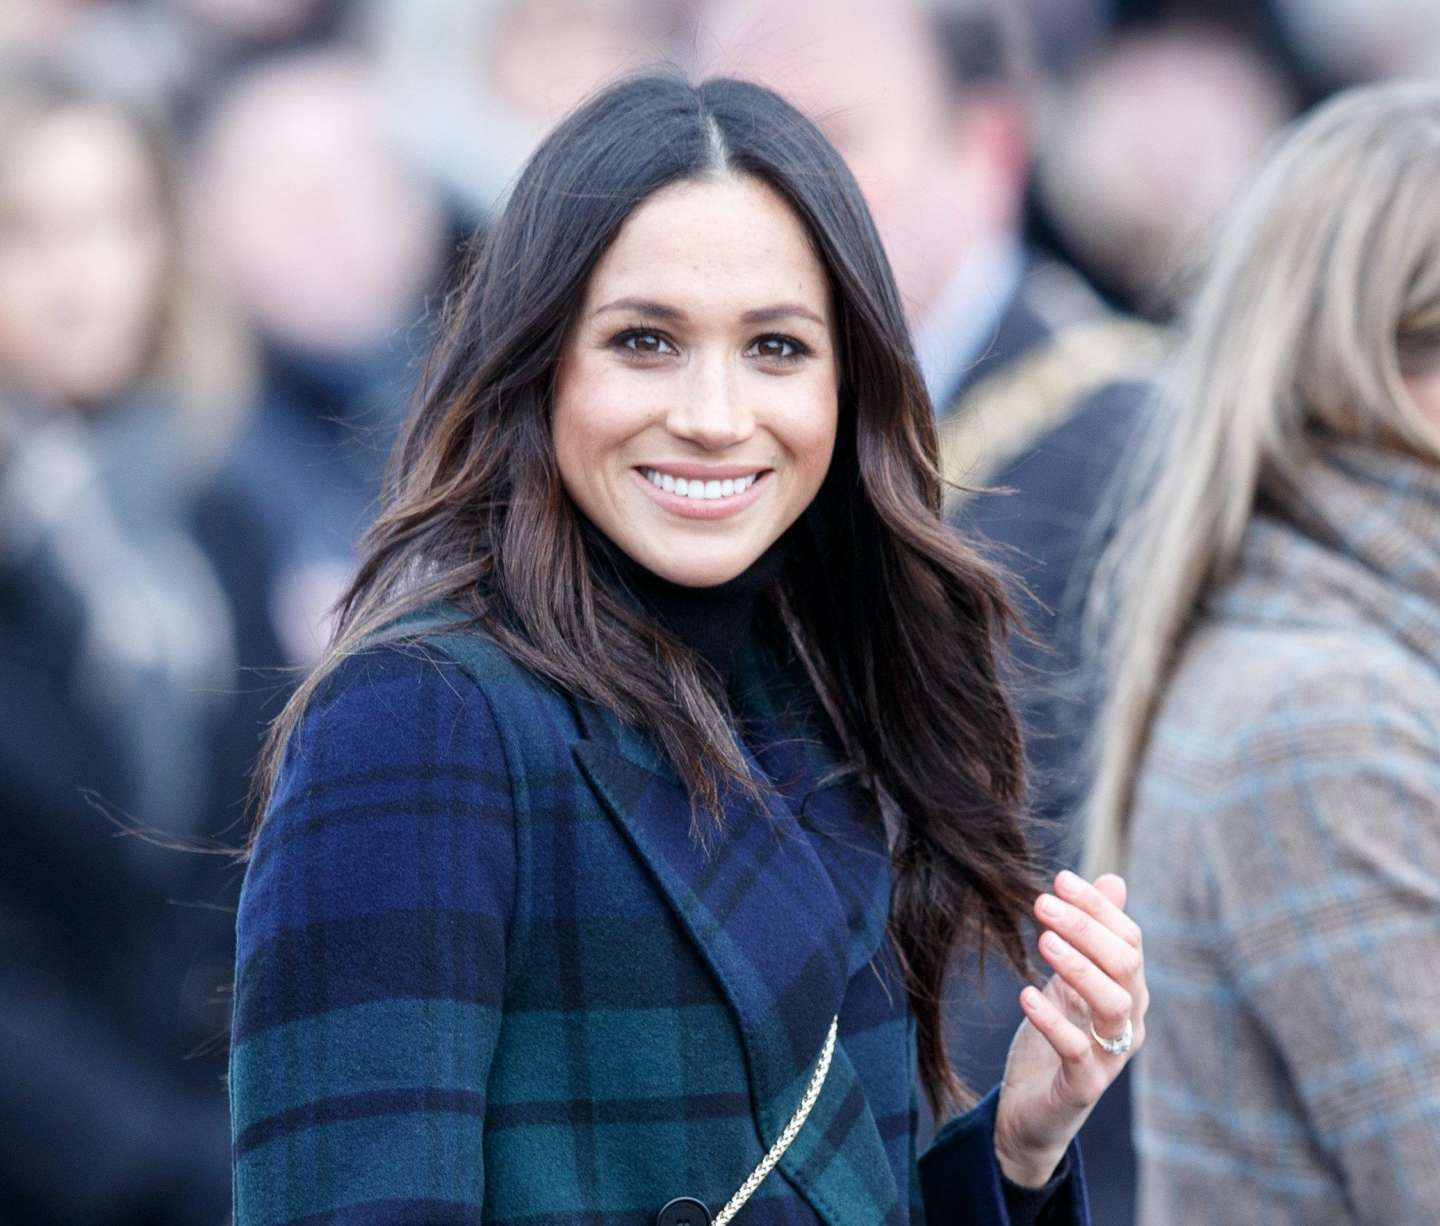 Gli hair look impeccabili di Meghan Markle